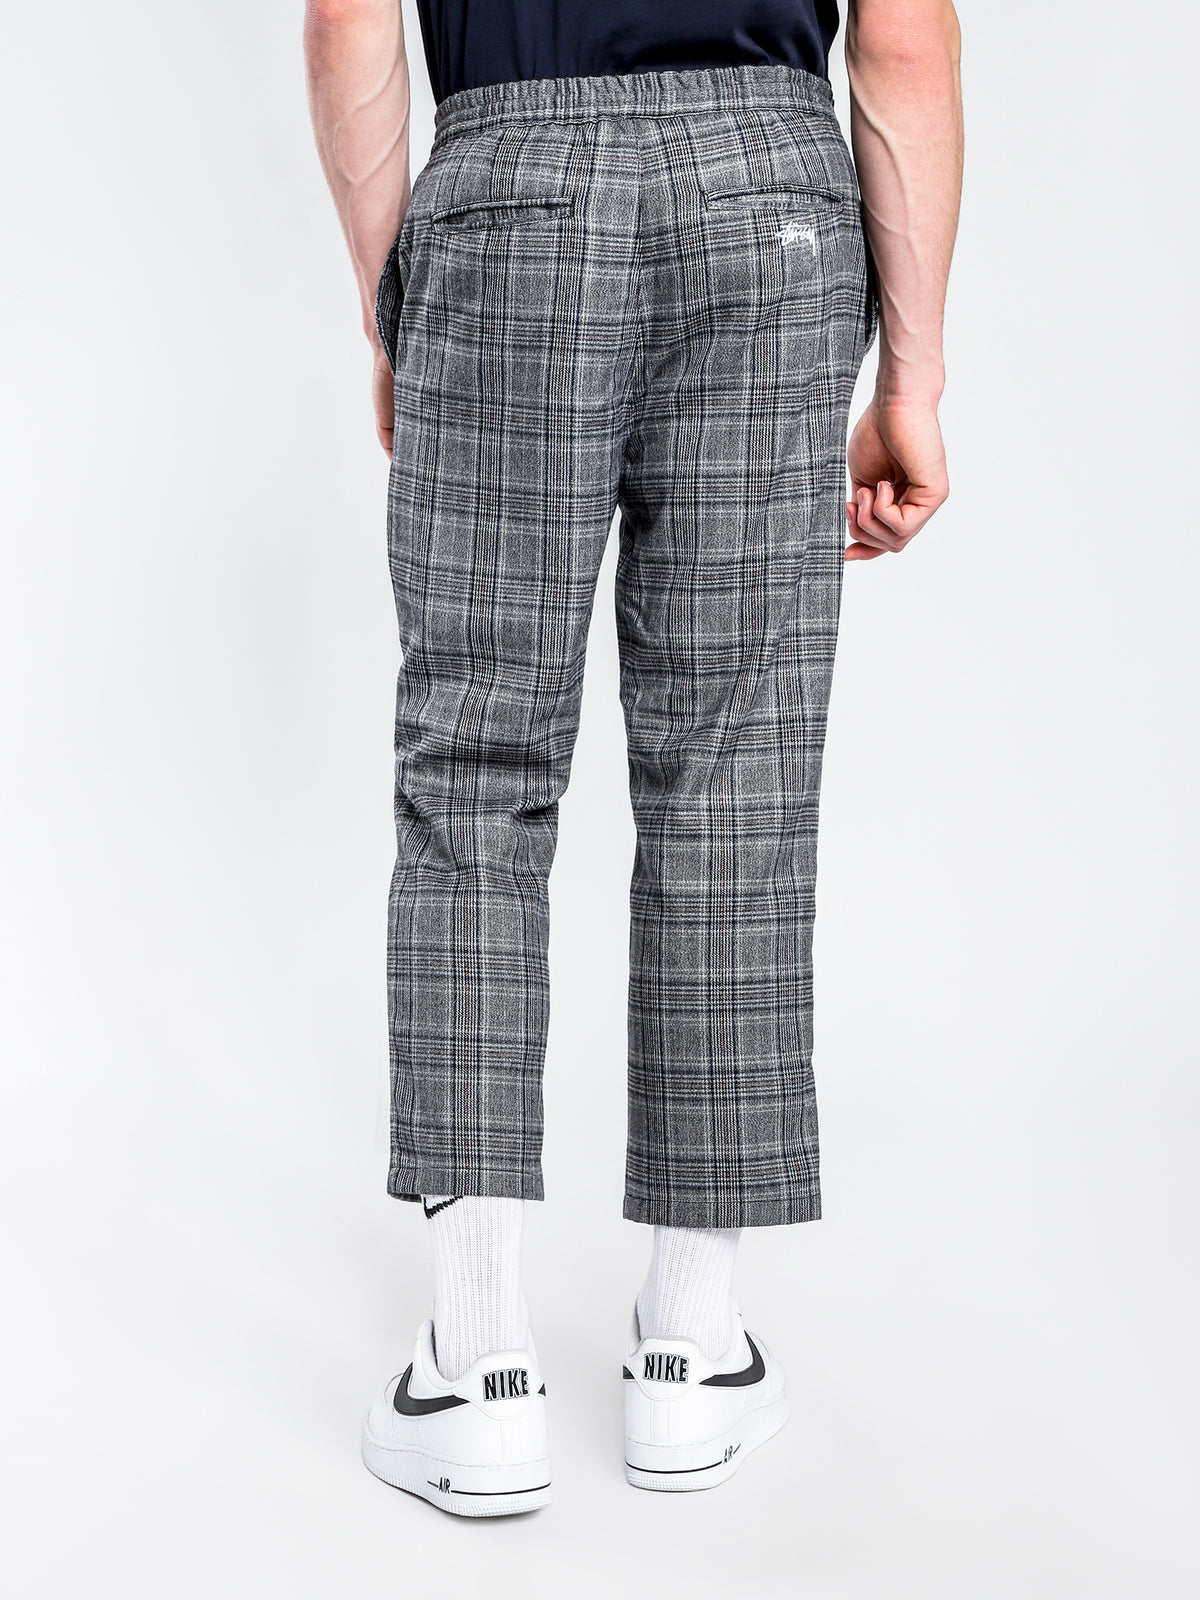 Glaser Street Pants in Blue & Grey Check